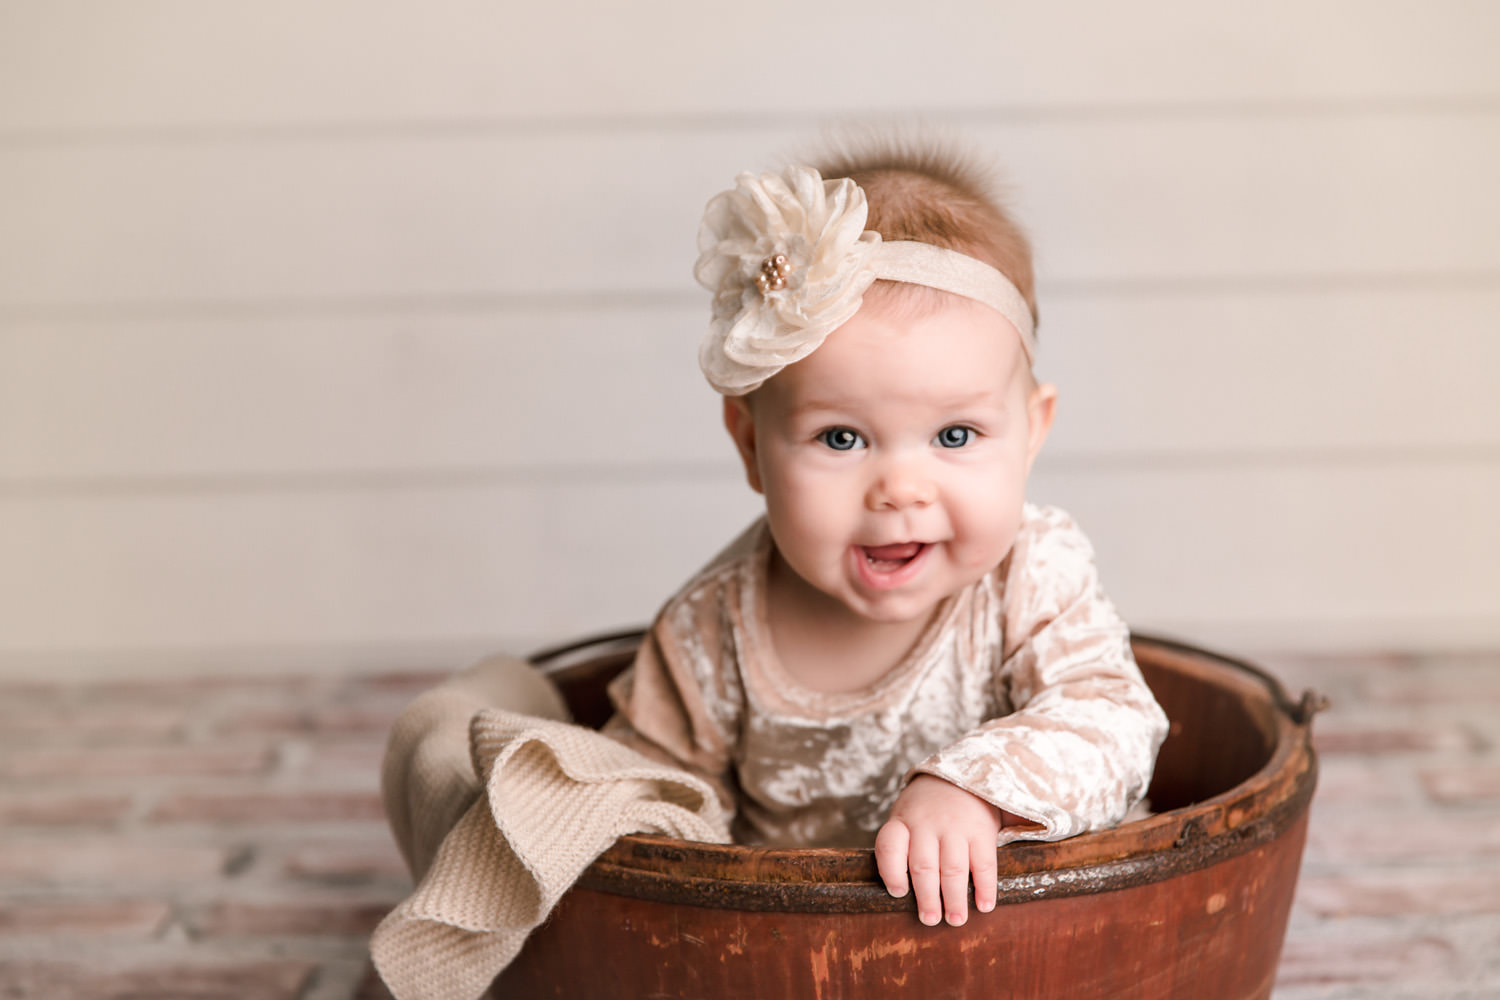 Smiling baby sitting in a bucket - Redding, CA Family photographers